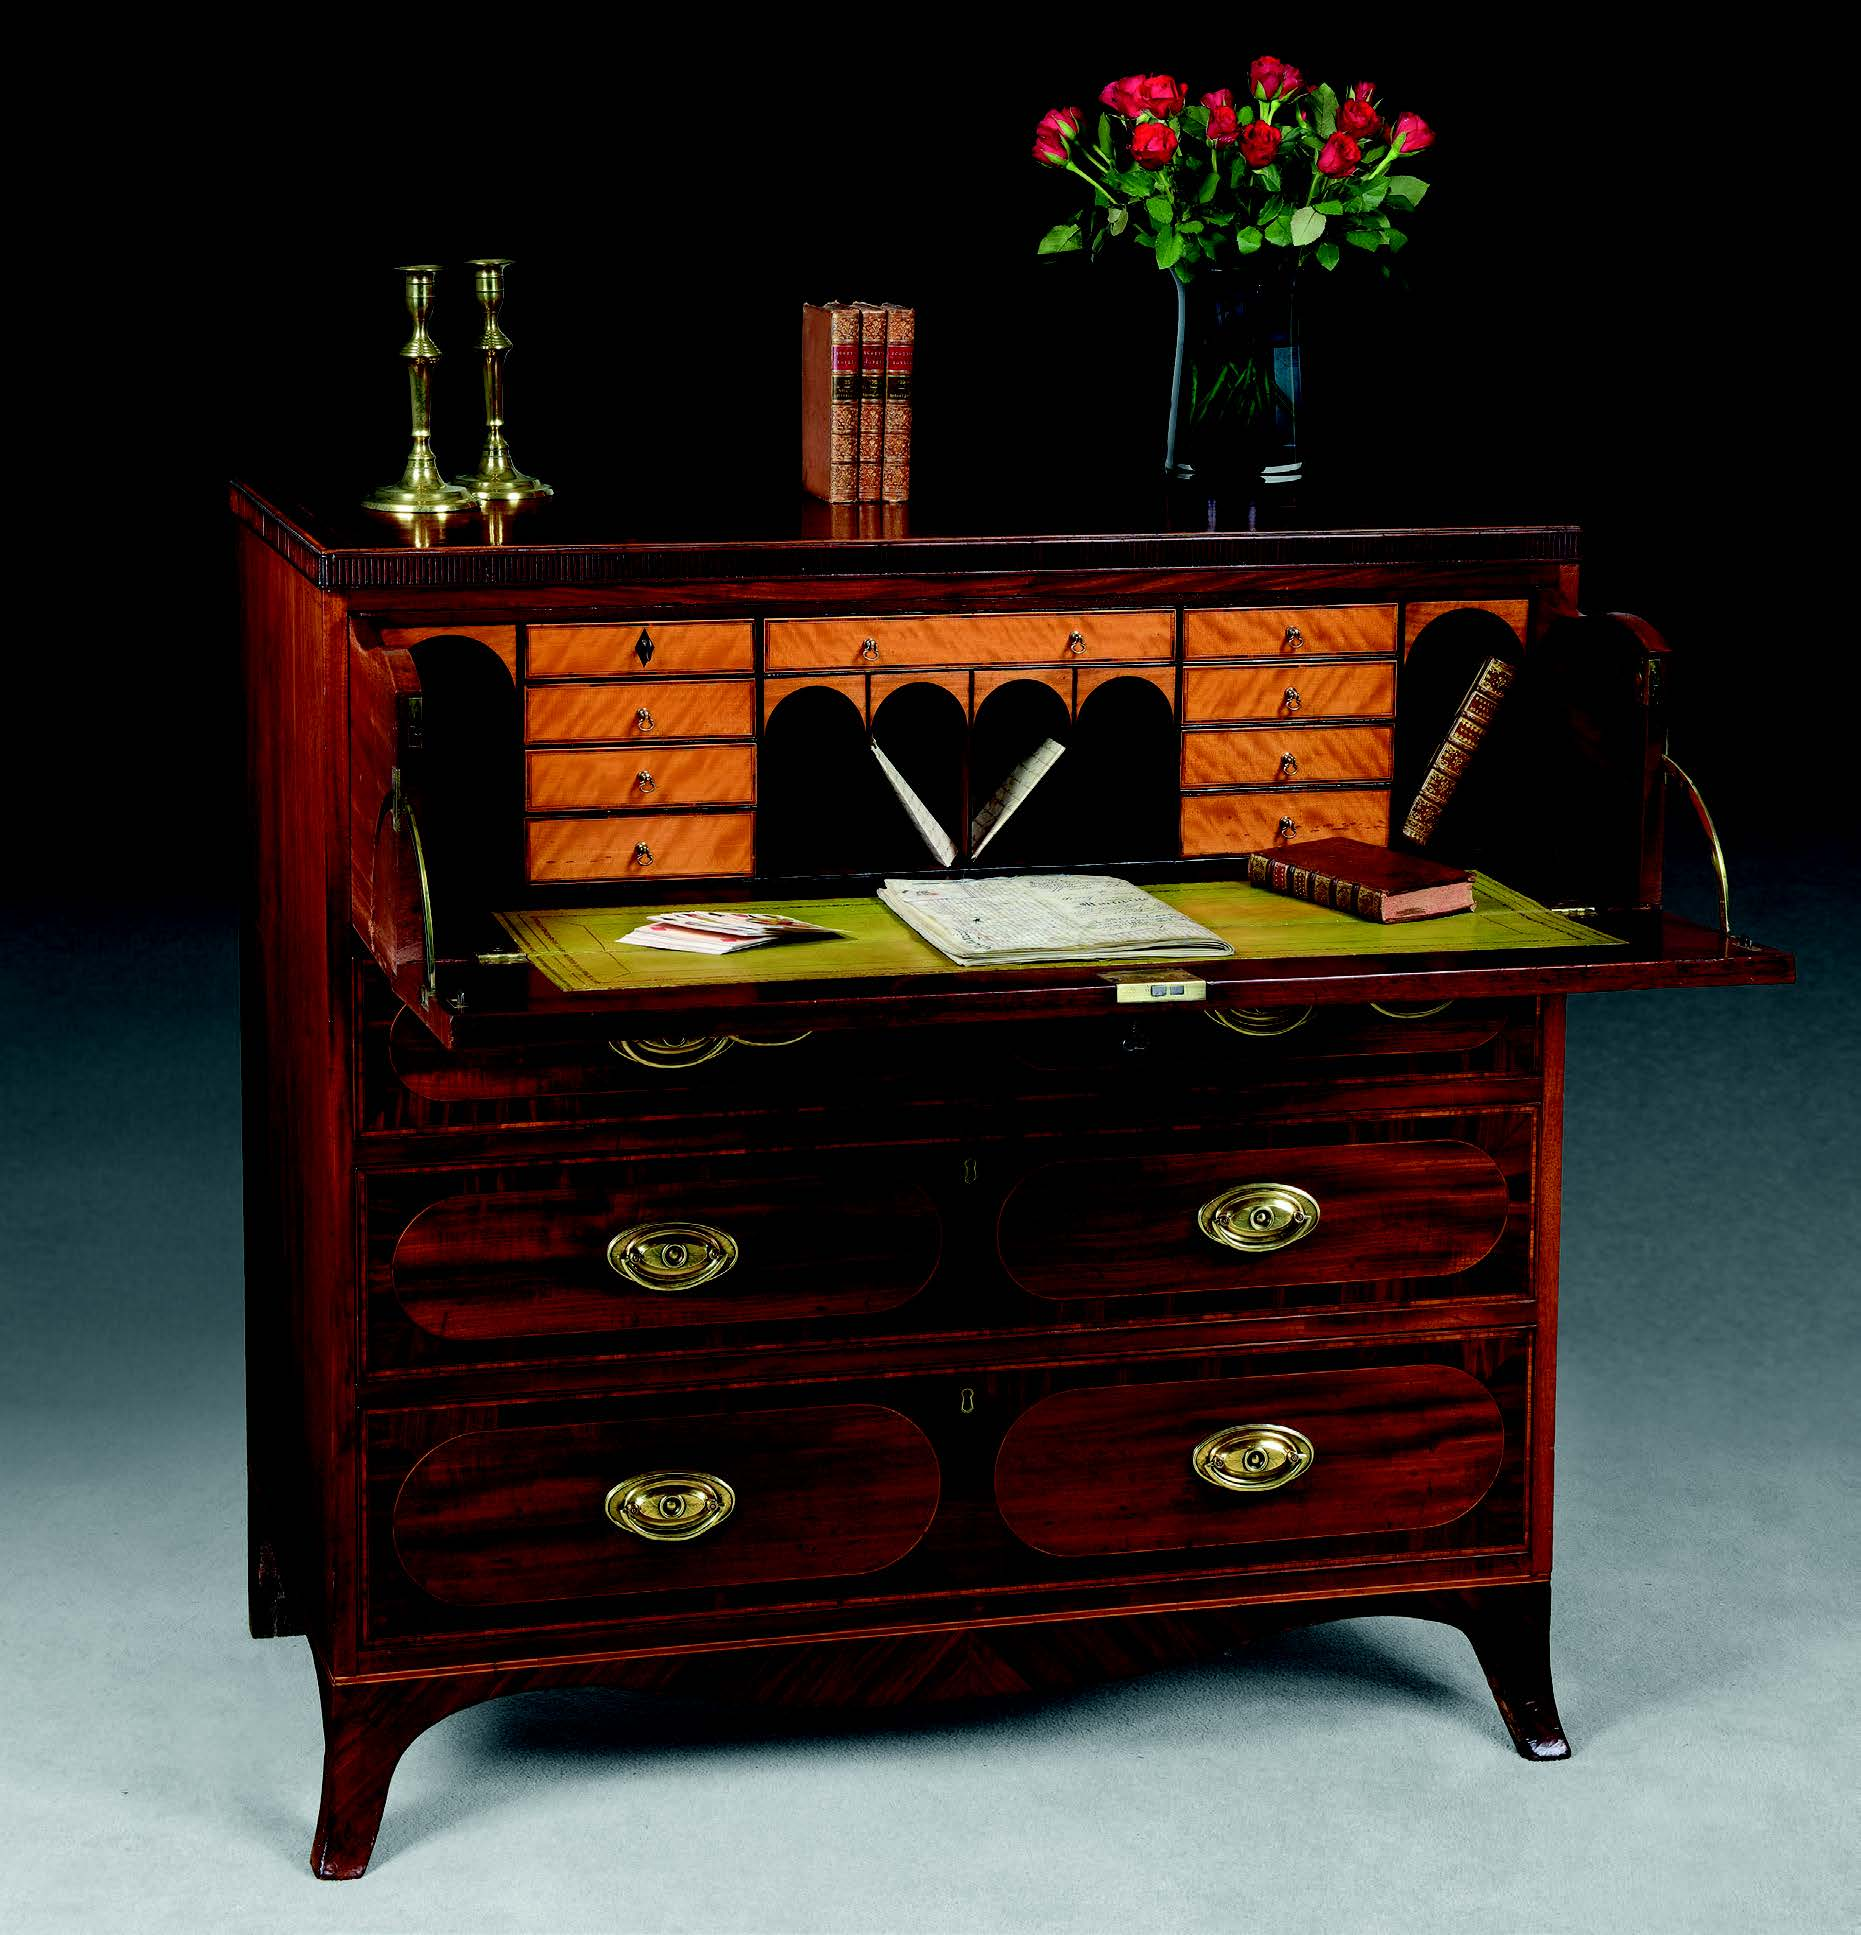 A Sheraton period mahogany secretaire chest of drawers, c. 1790, inlaid with obround panels on splayed bracket feet